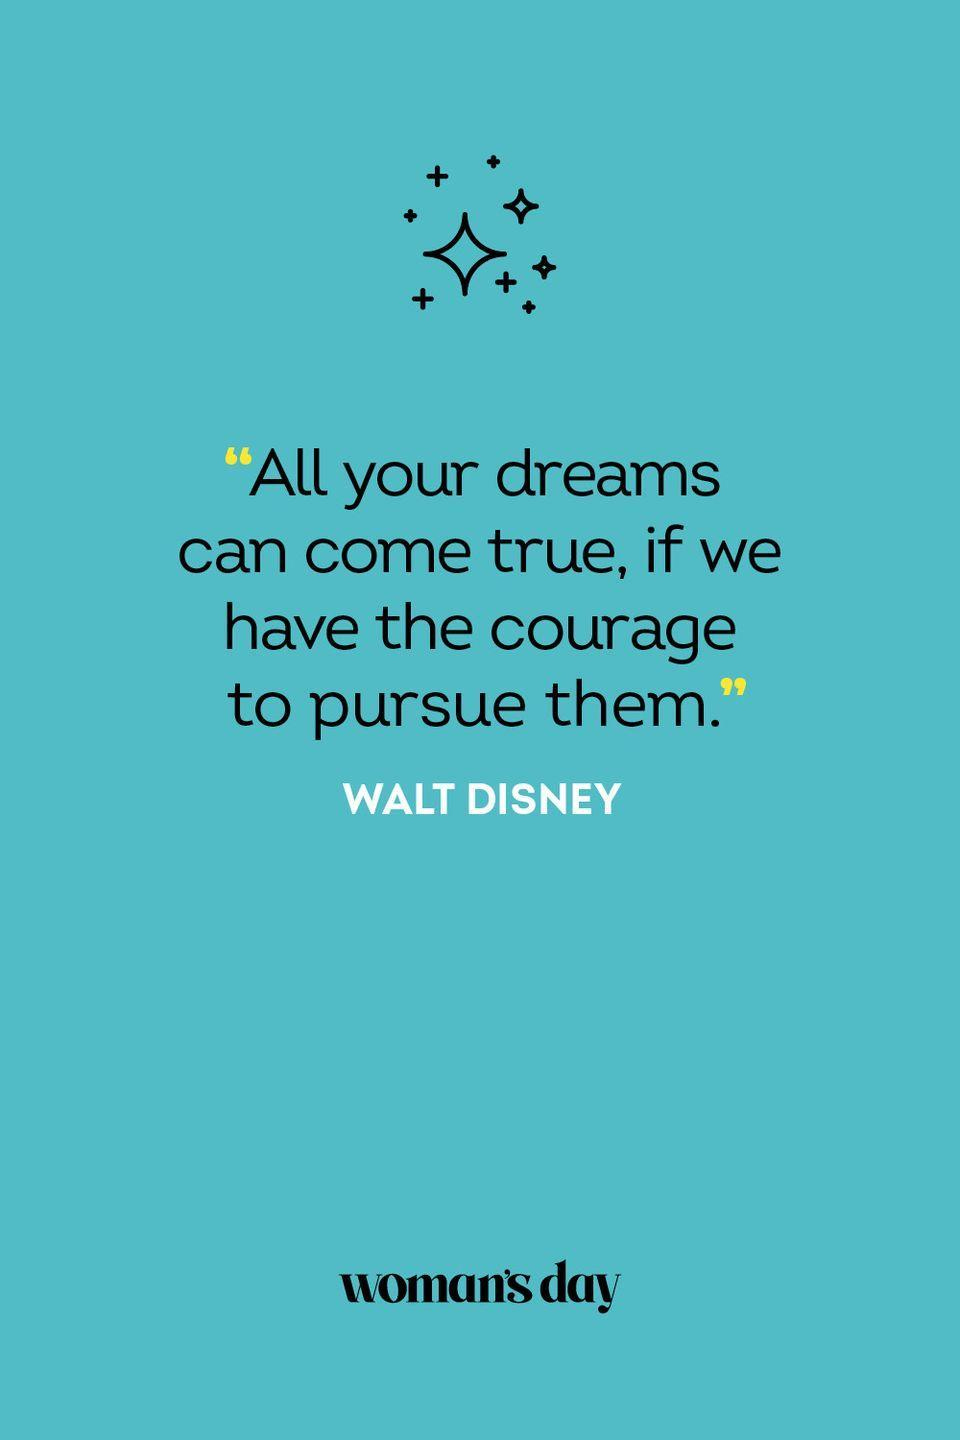 <p>All your dreams can come true, if we have the courage to pursue them.</p>